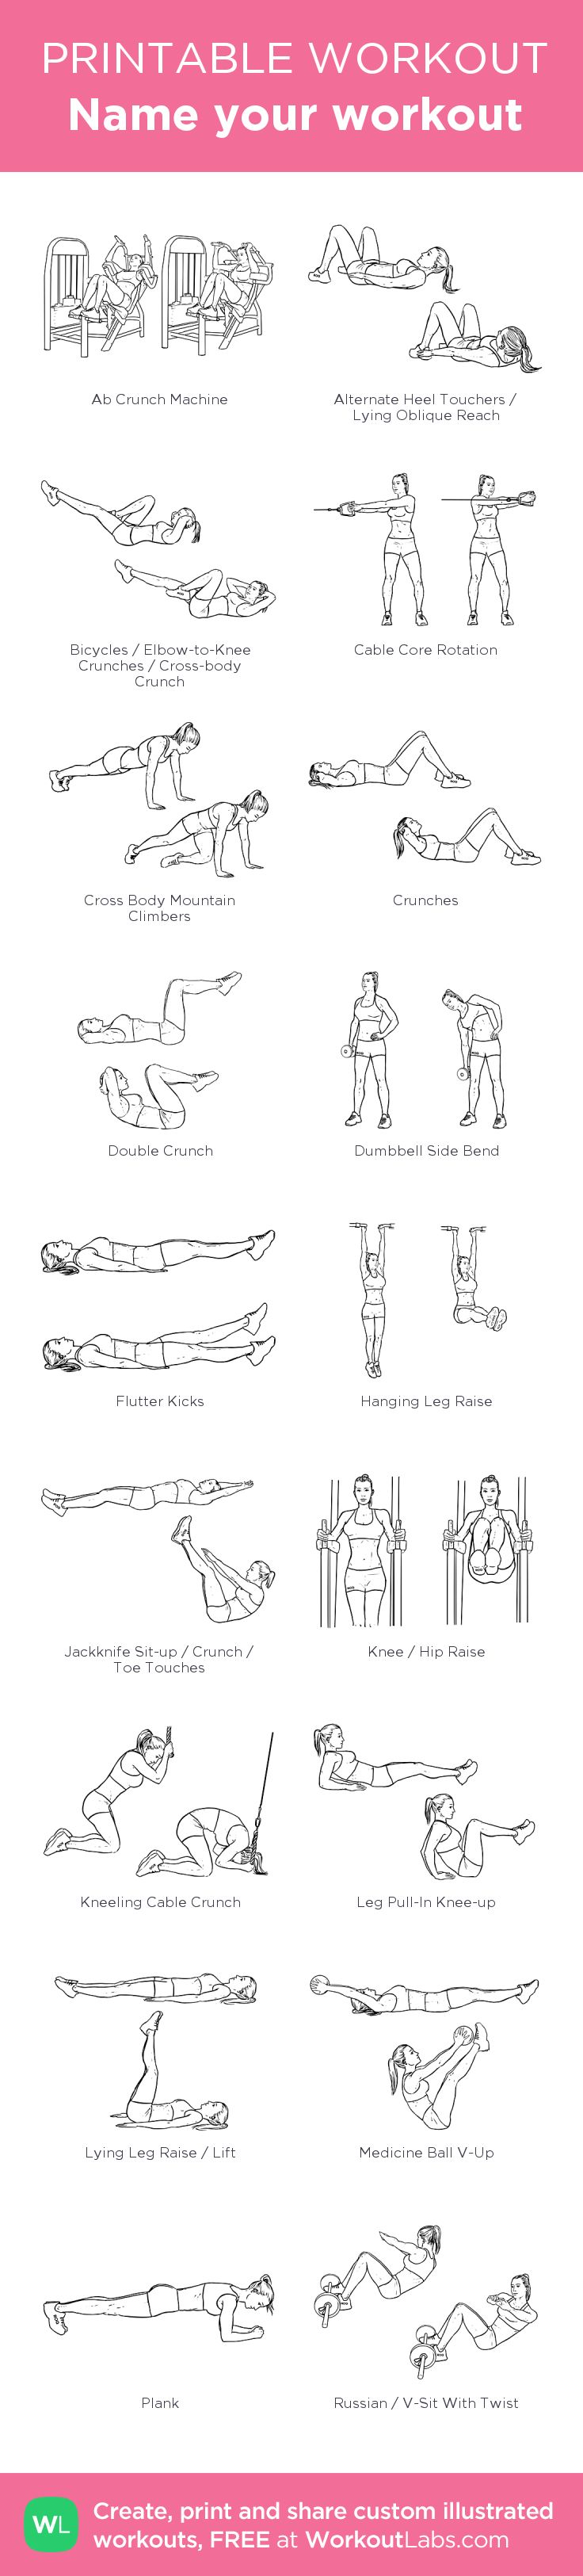 Name your workout: my visual workout created at WorkoutLabs.com • Click through to customize and download as a FREE PDF! #customworkout #abs